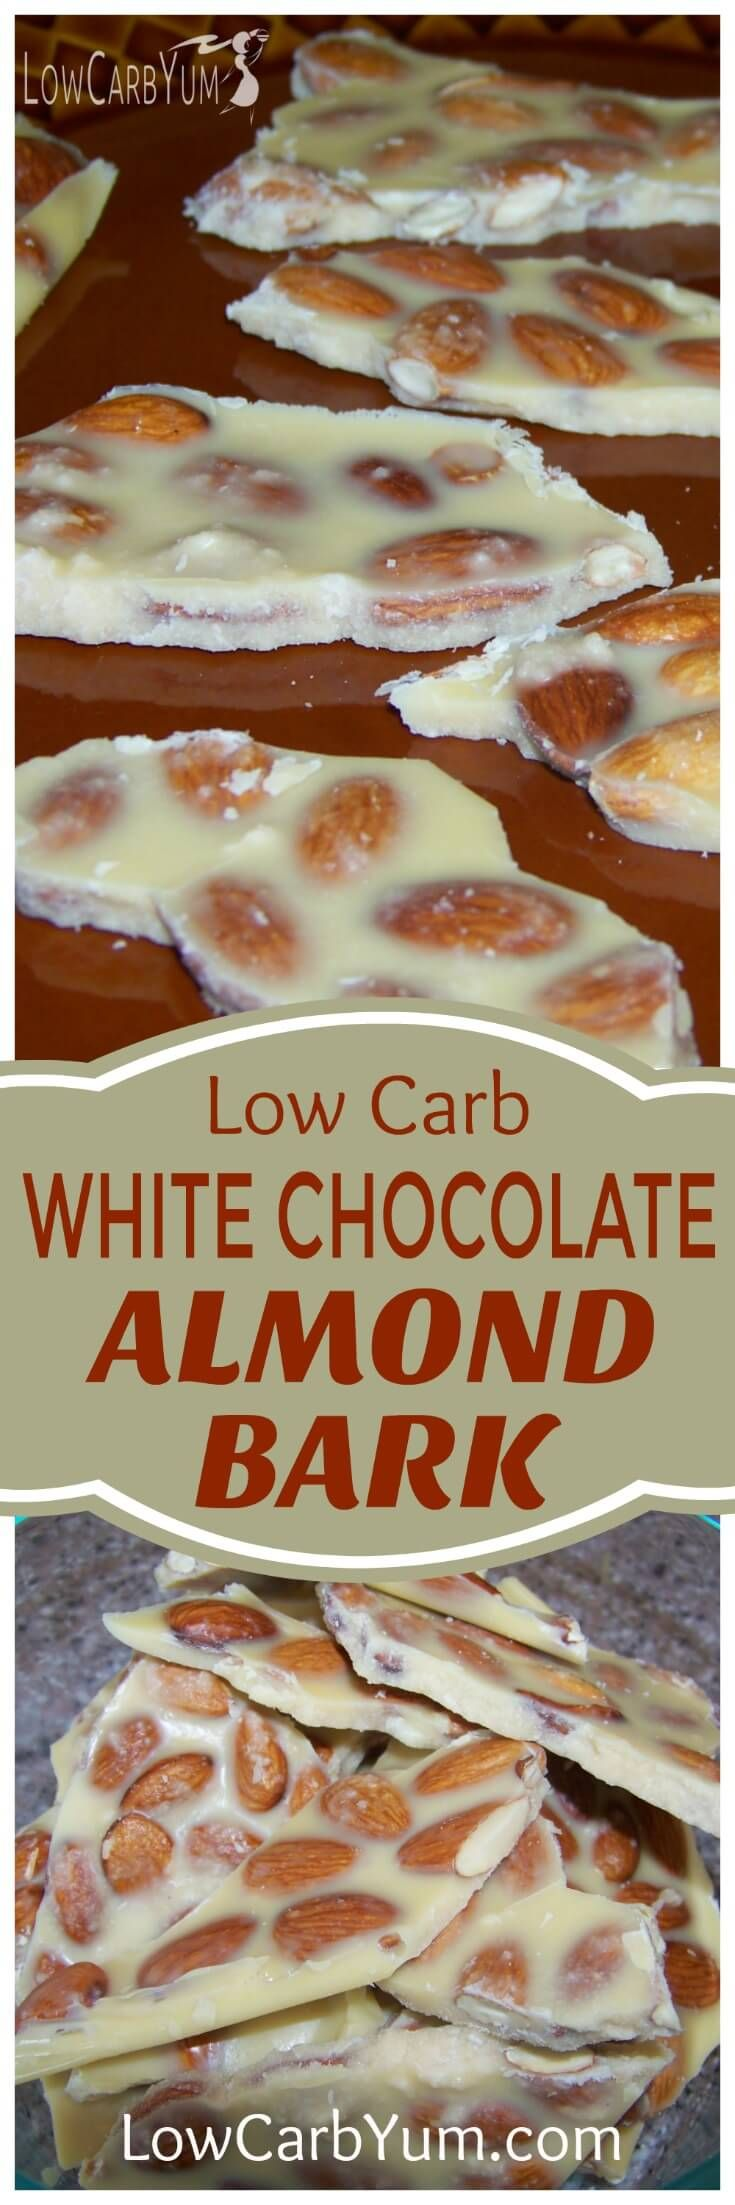 White chocolate is a candy I loved as a child. It was probably due to its intense sweetness ...